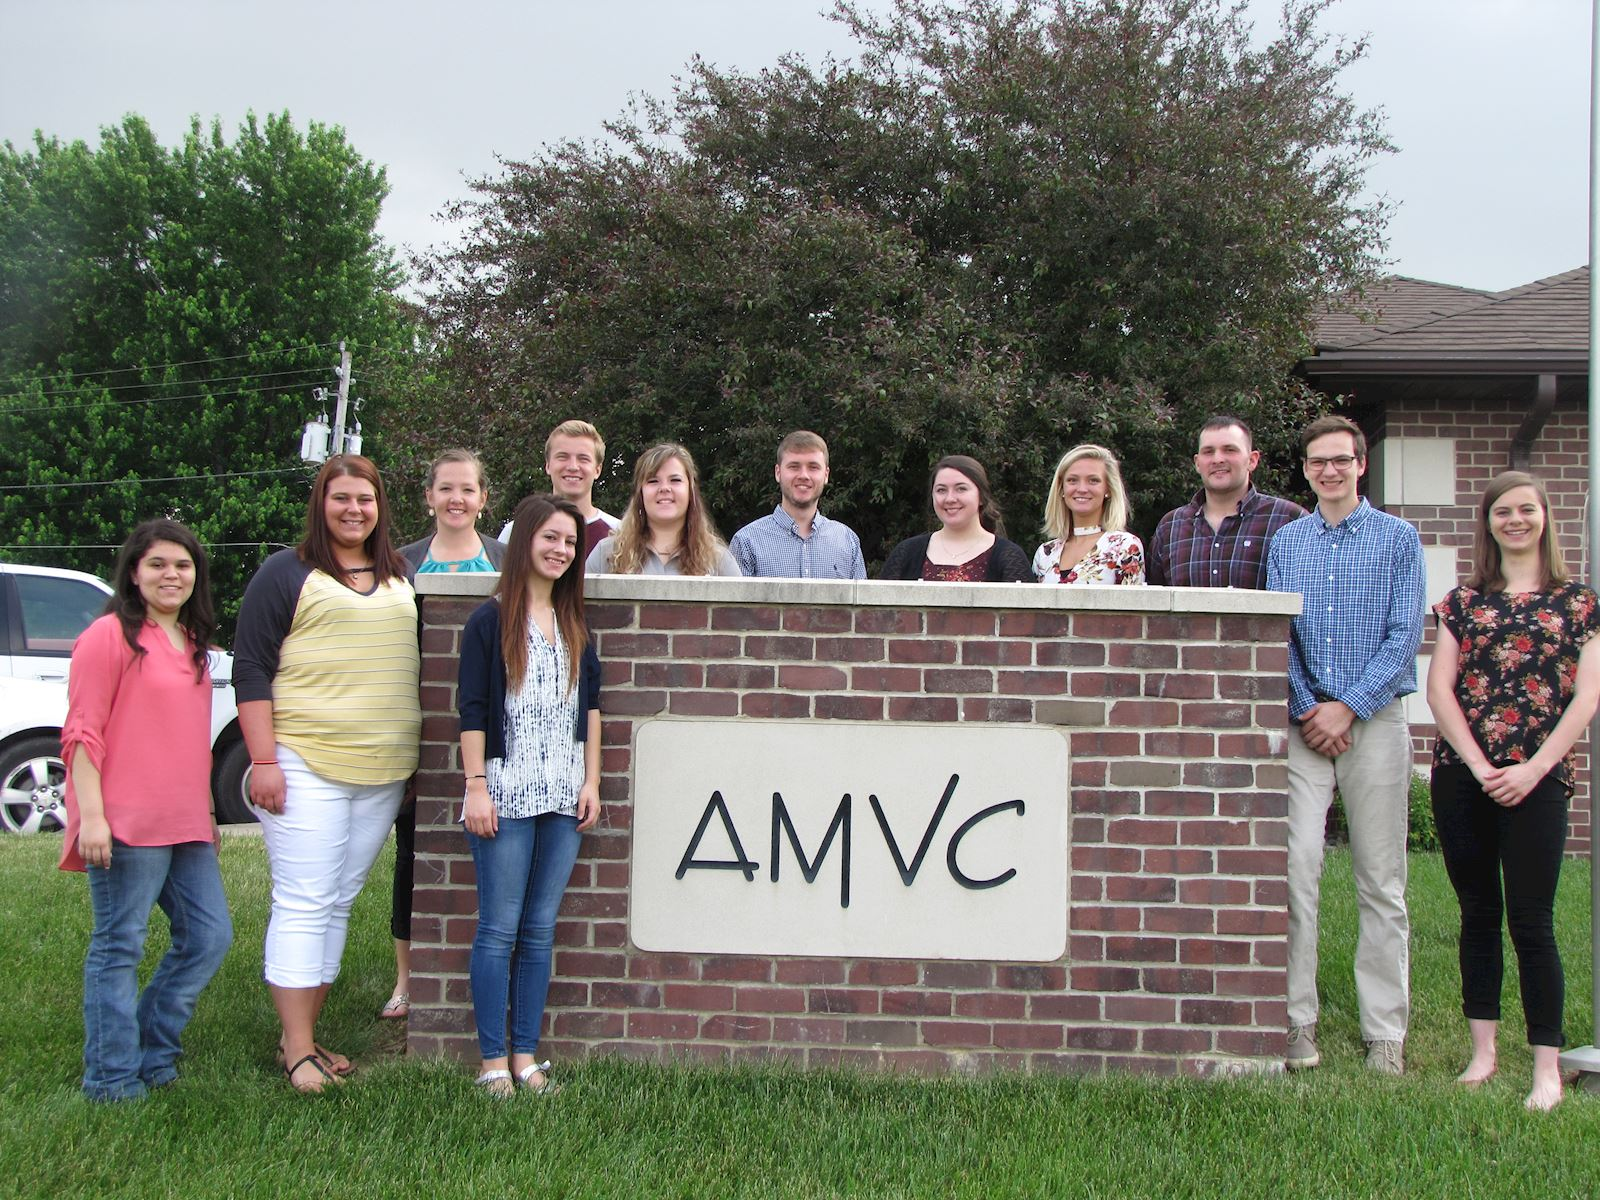 Students intern with AMVC to learn about pigs